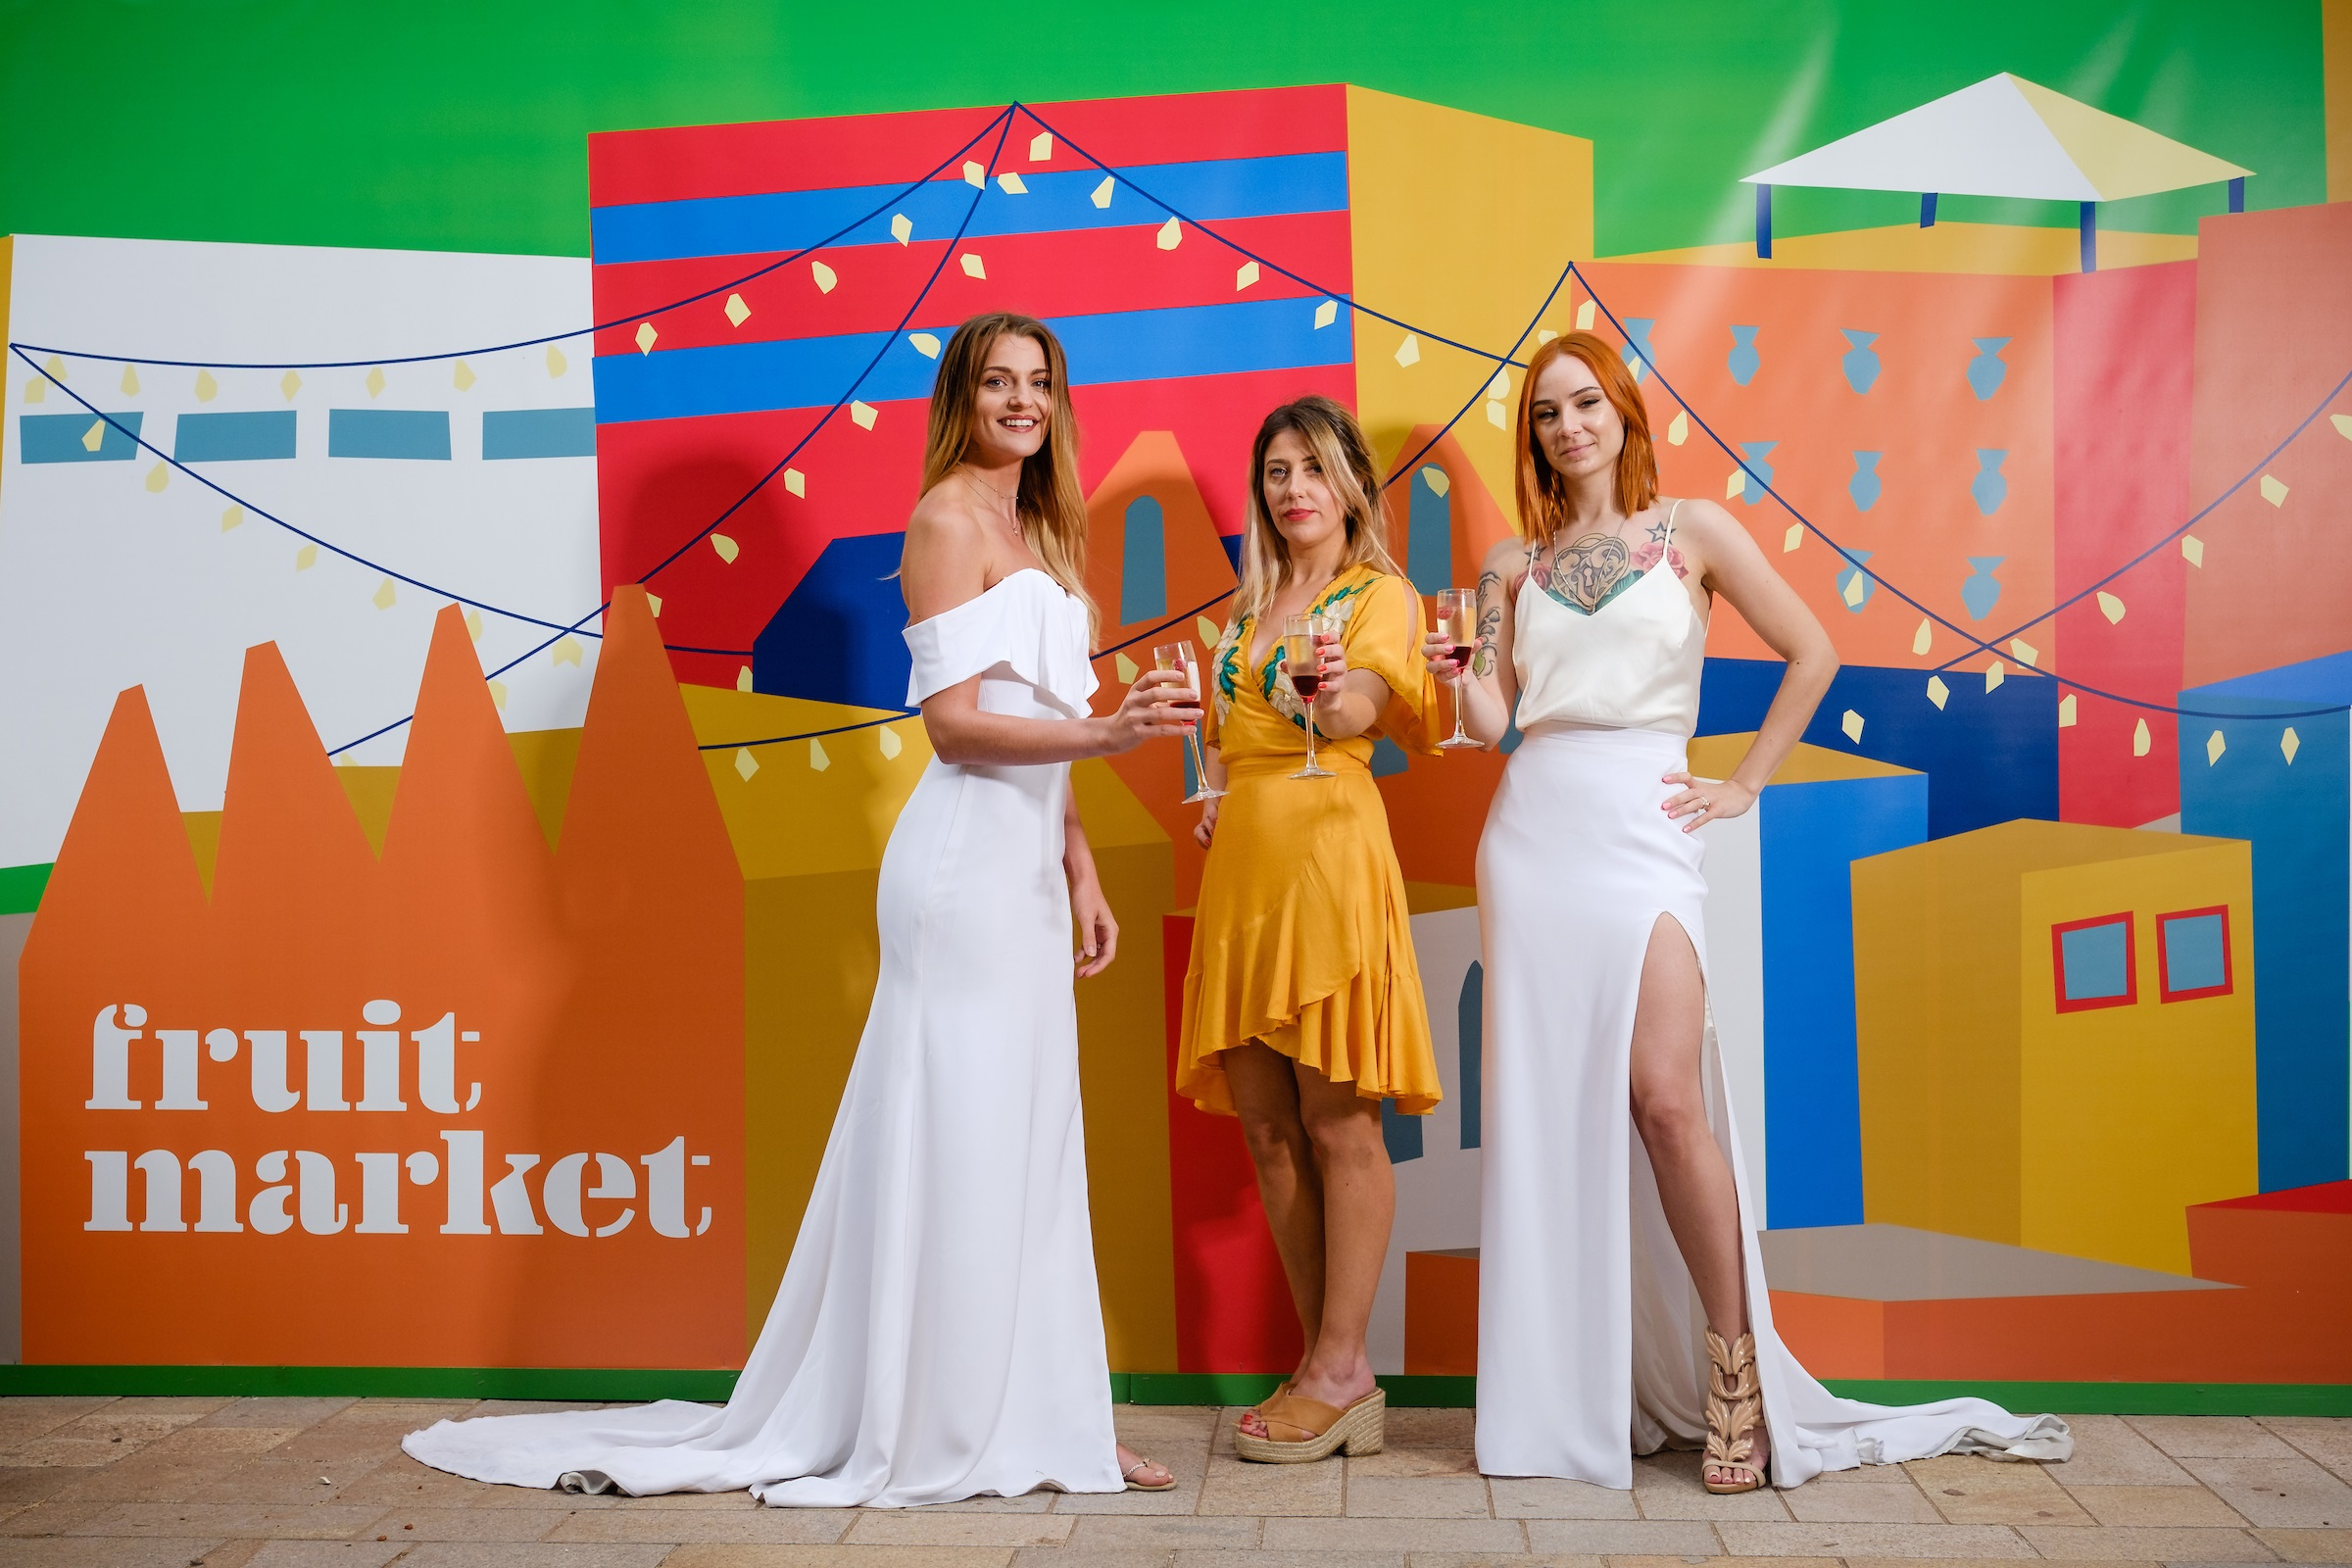 Owner Katey Headley, centre, pictured with past customers Joanne Hill, left, and Hayley Sykes in the vibrant and creative Fruit Market quarter.